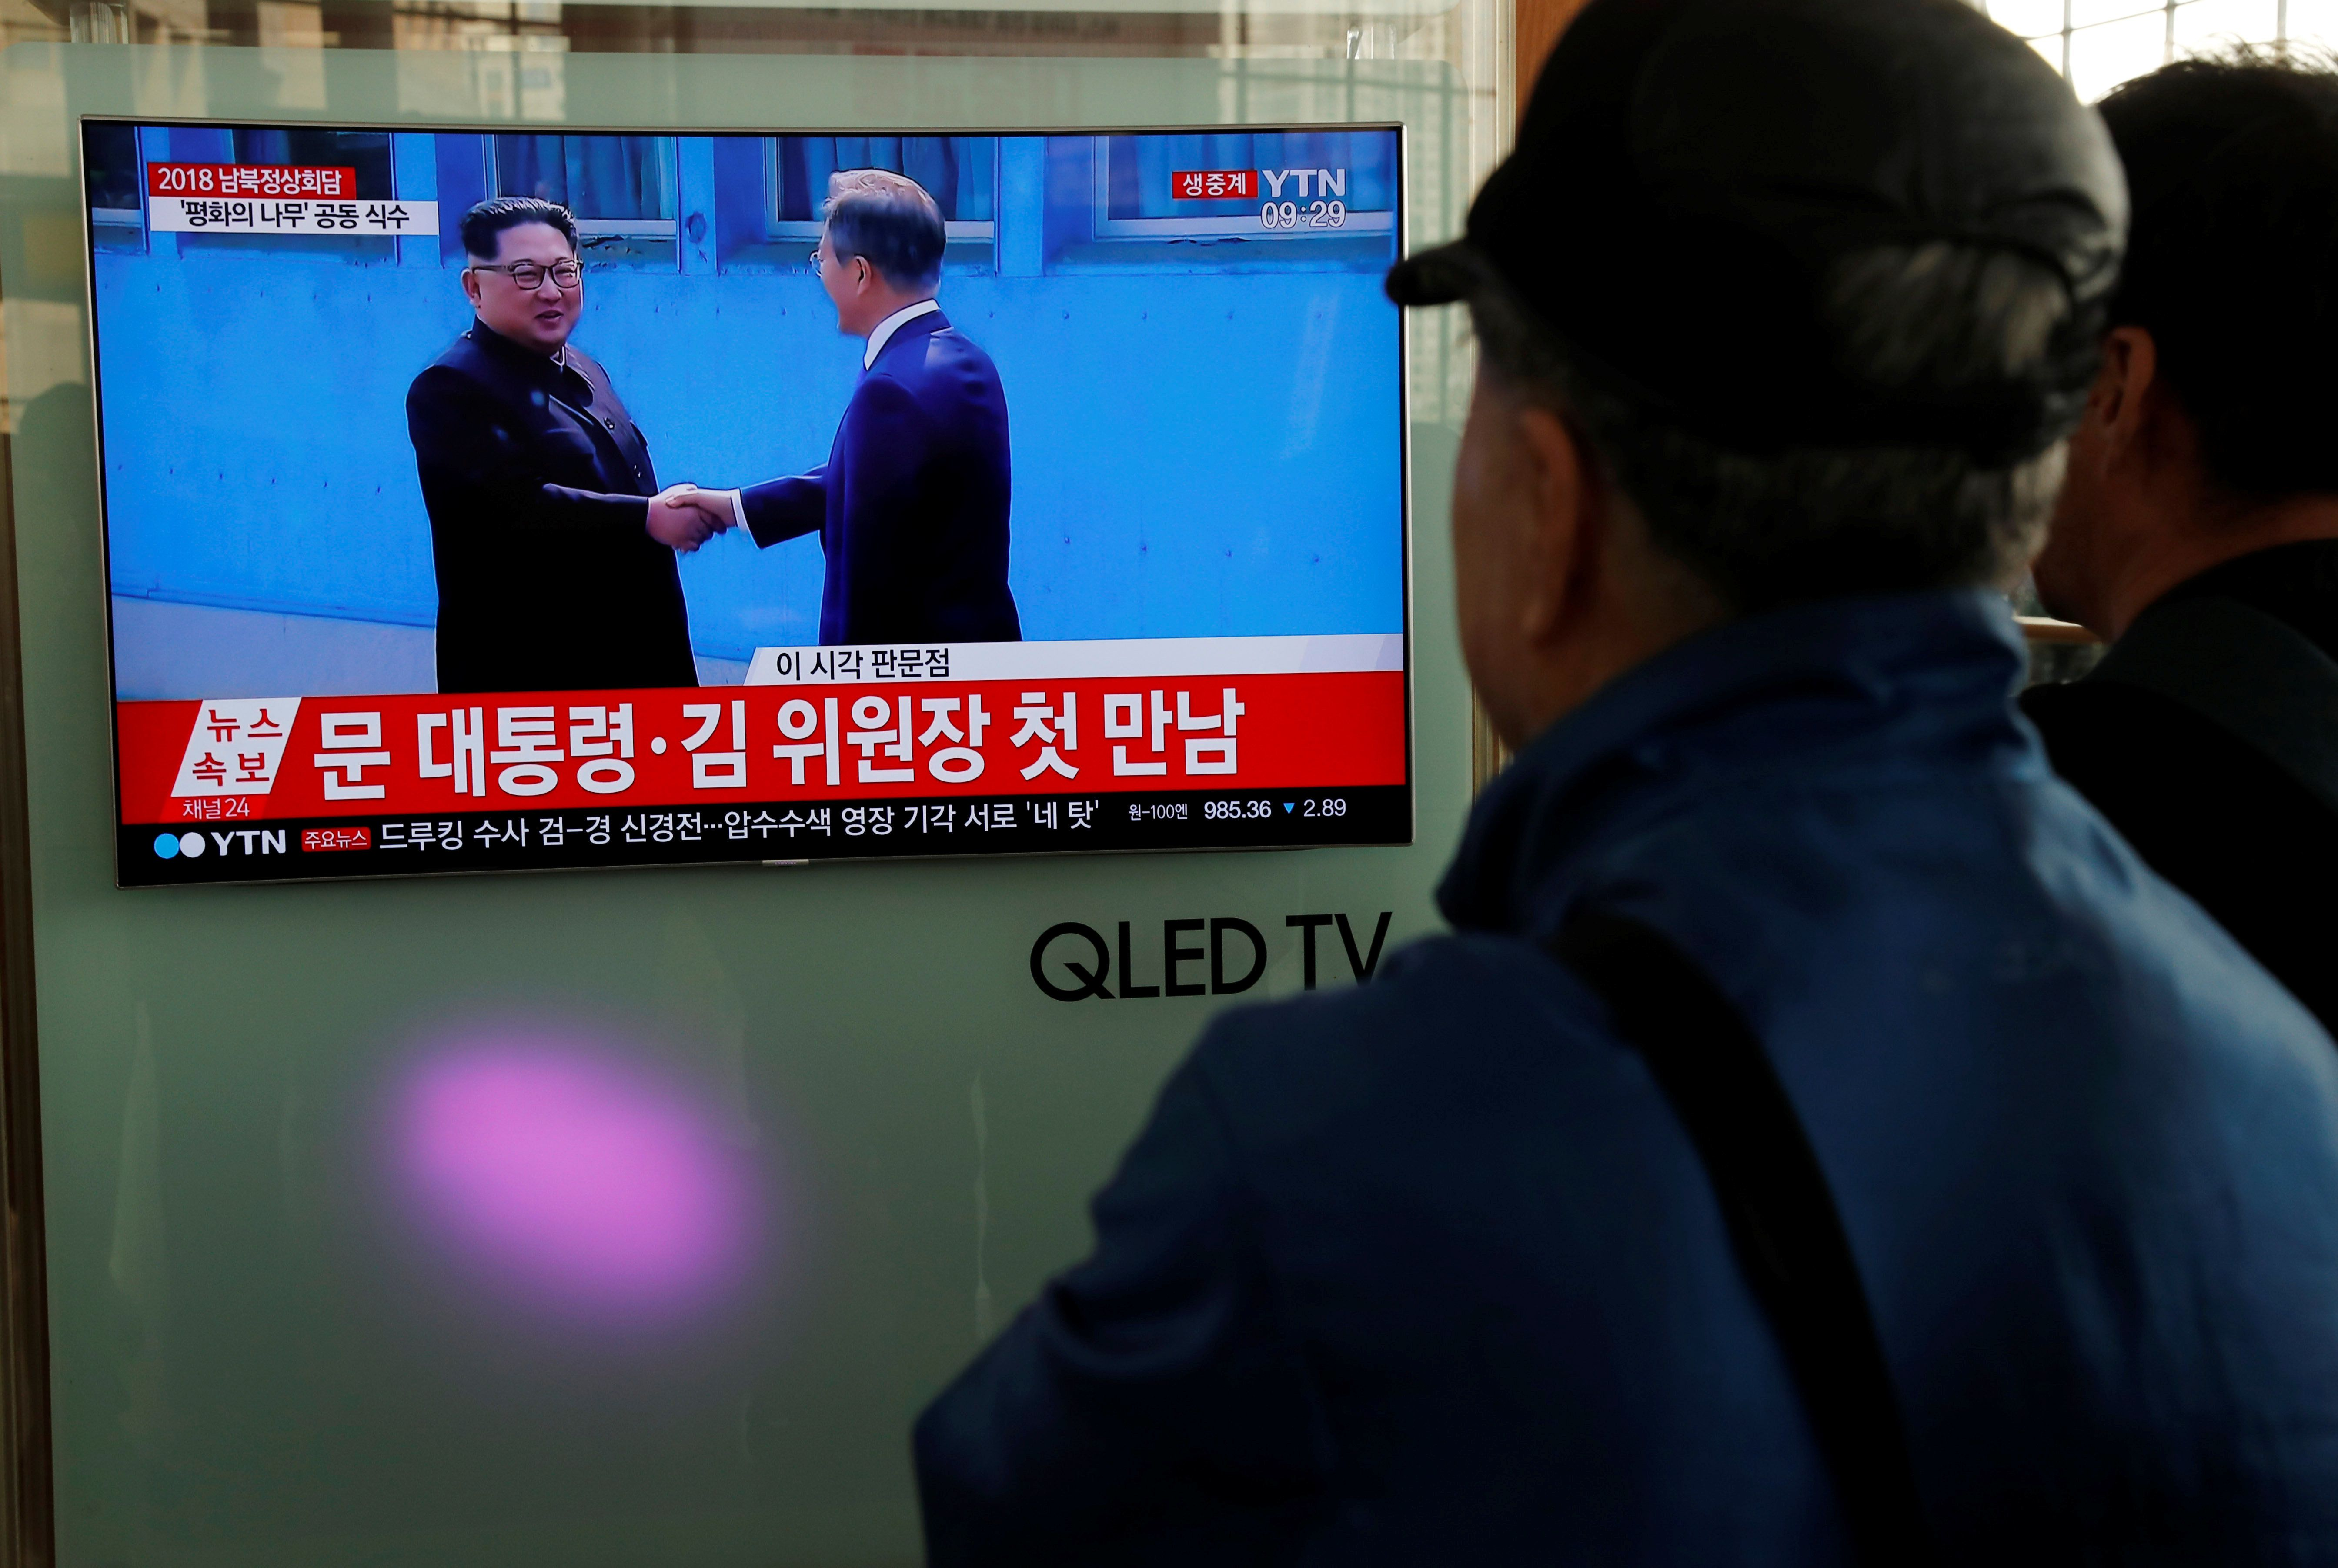 Kim Jong Un Crosses DMZ Into South Korea, First Leader From North To Do